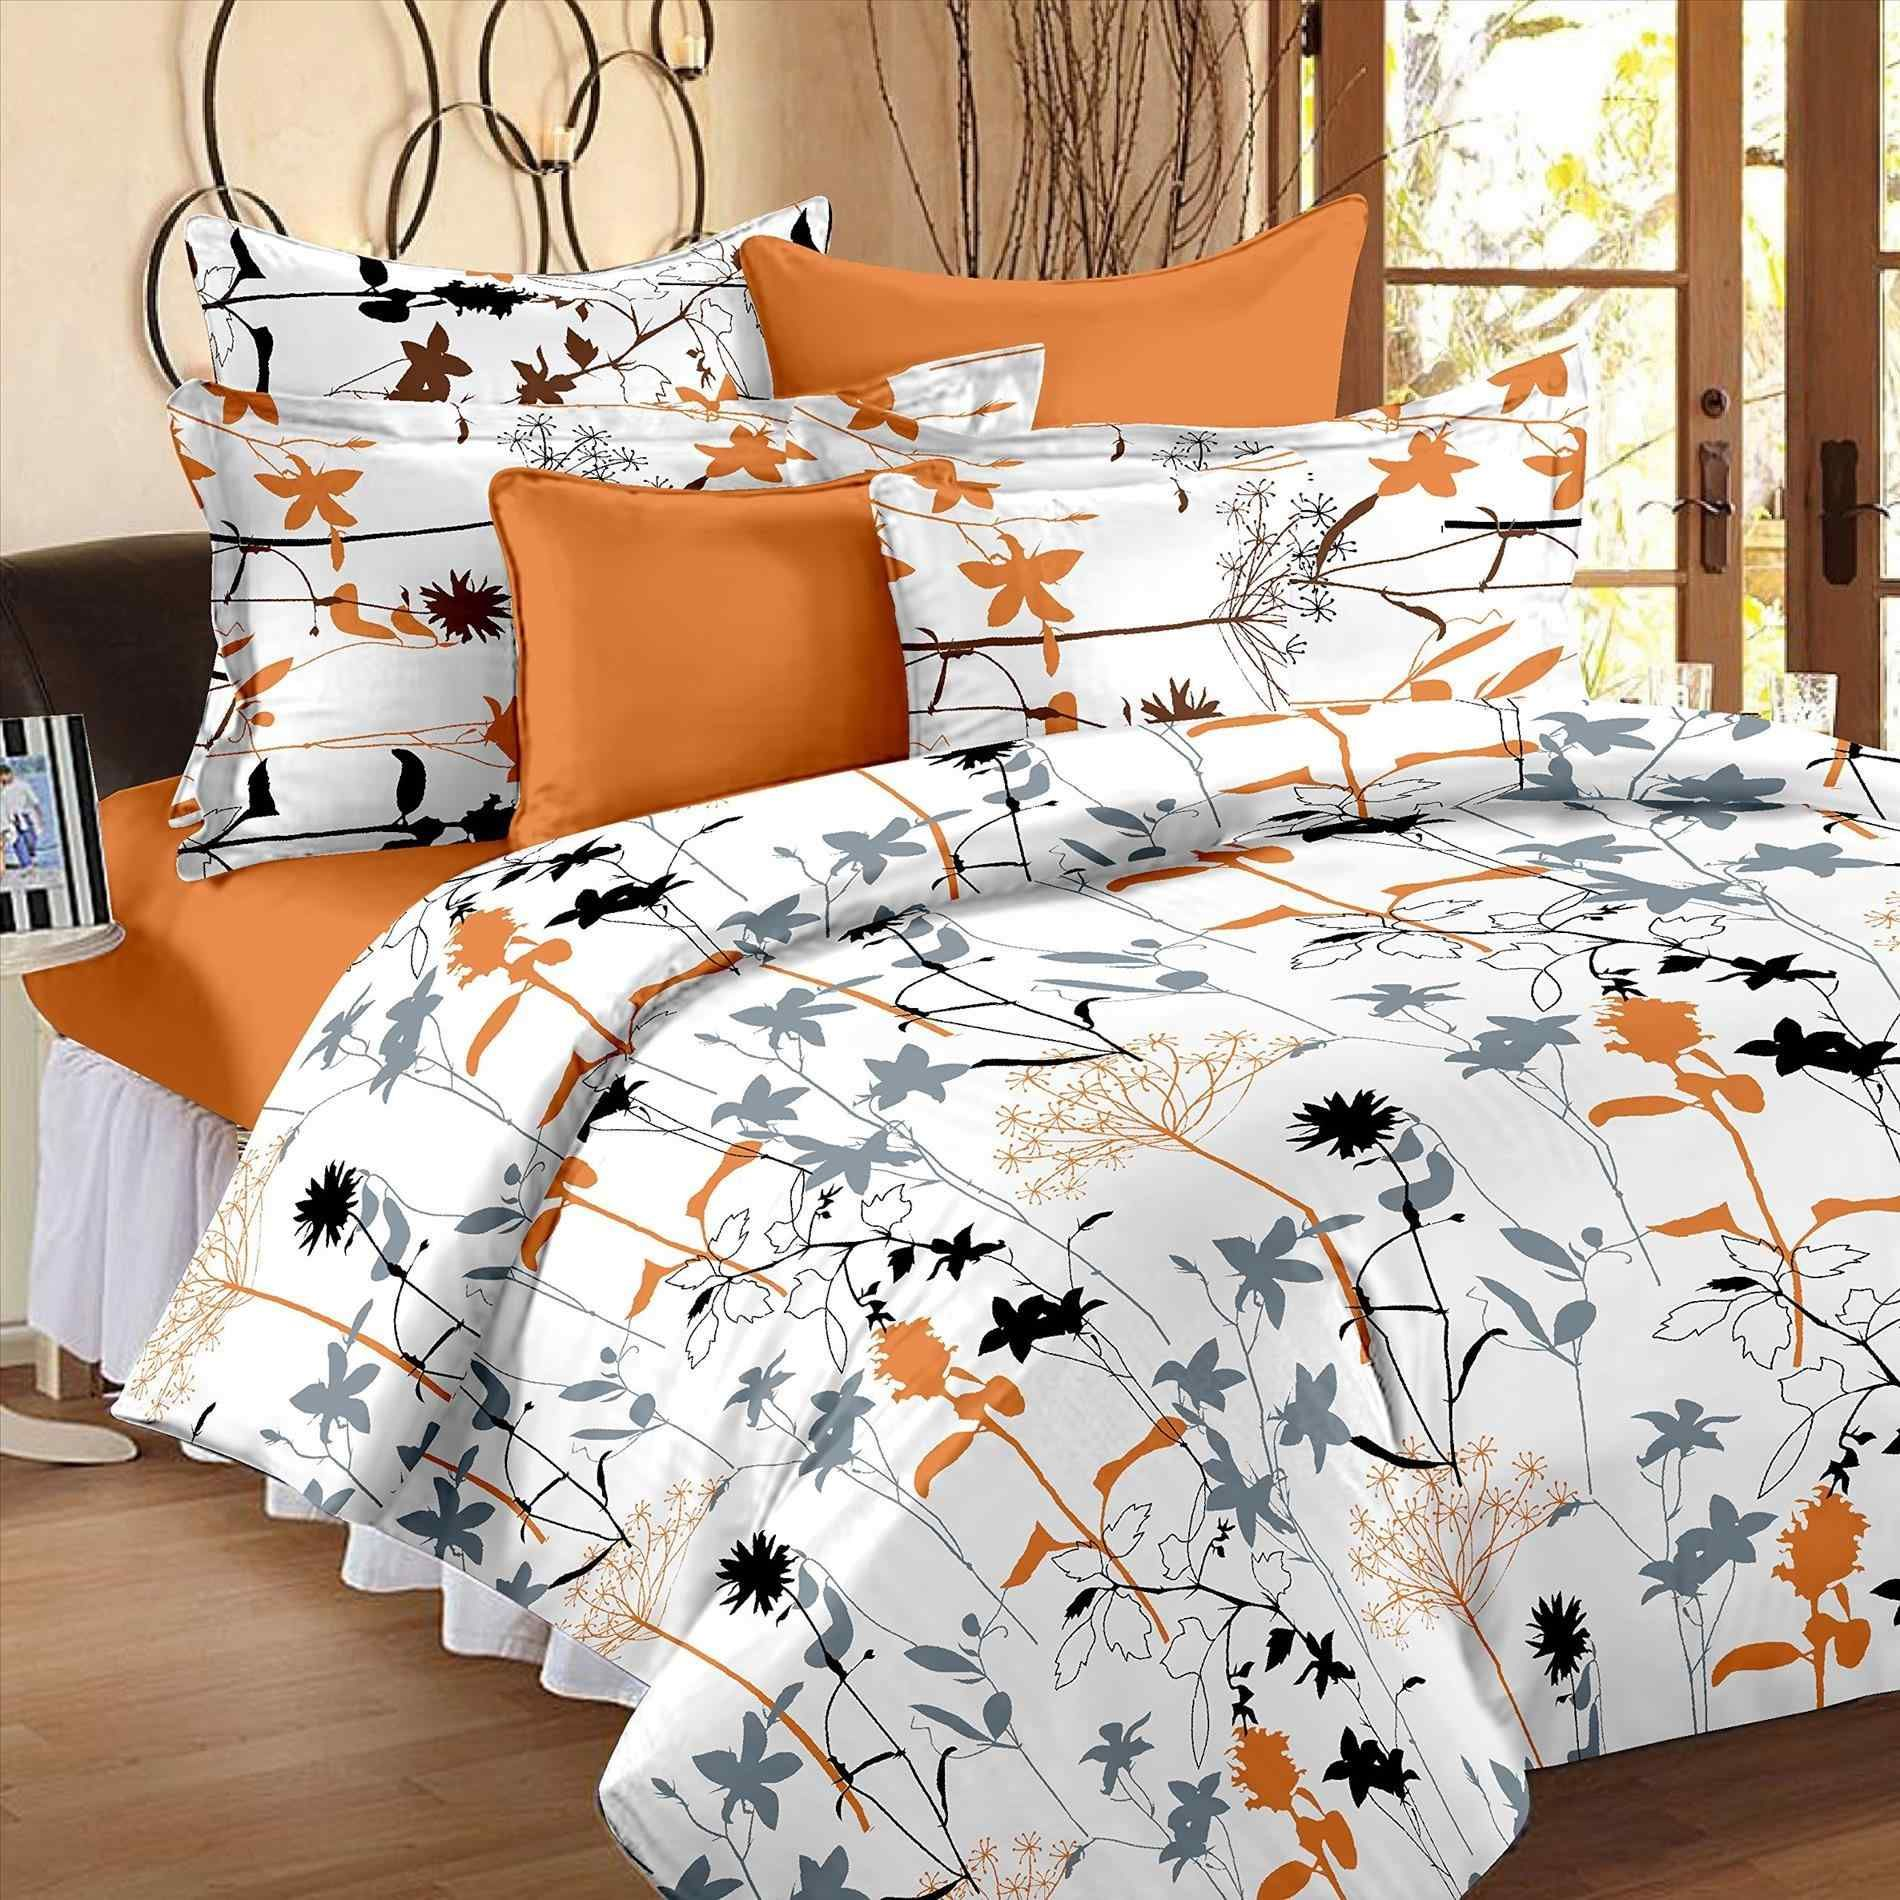 Wonderful Heart Shaped Bed Sheets For Beautiful Bedding Ideas Breakpr Bed Sheets Bedding Sets Bed